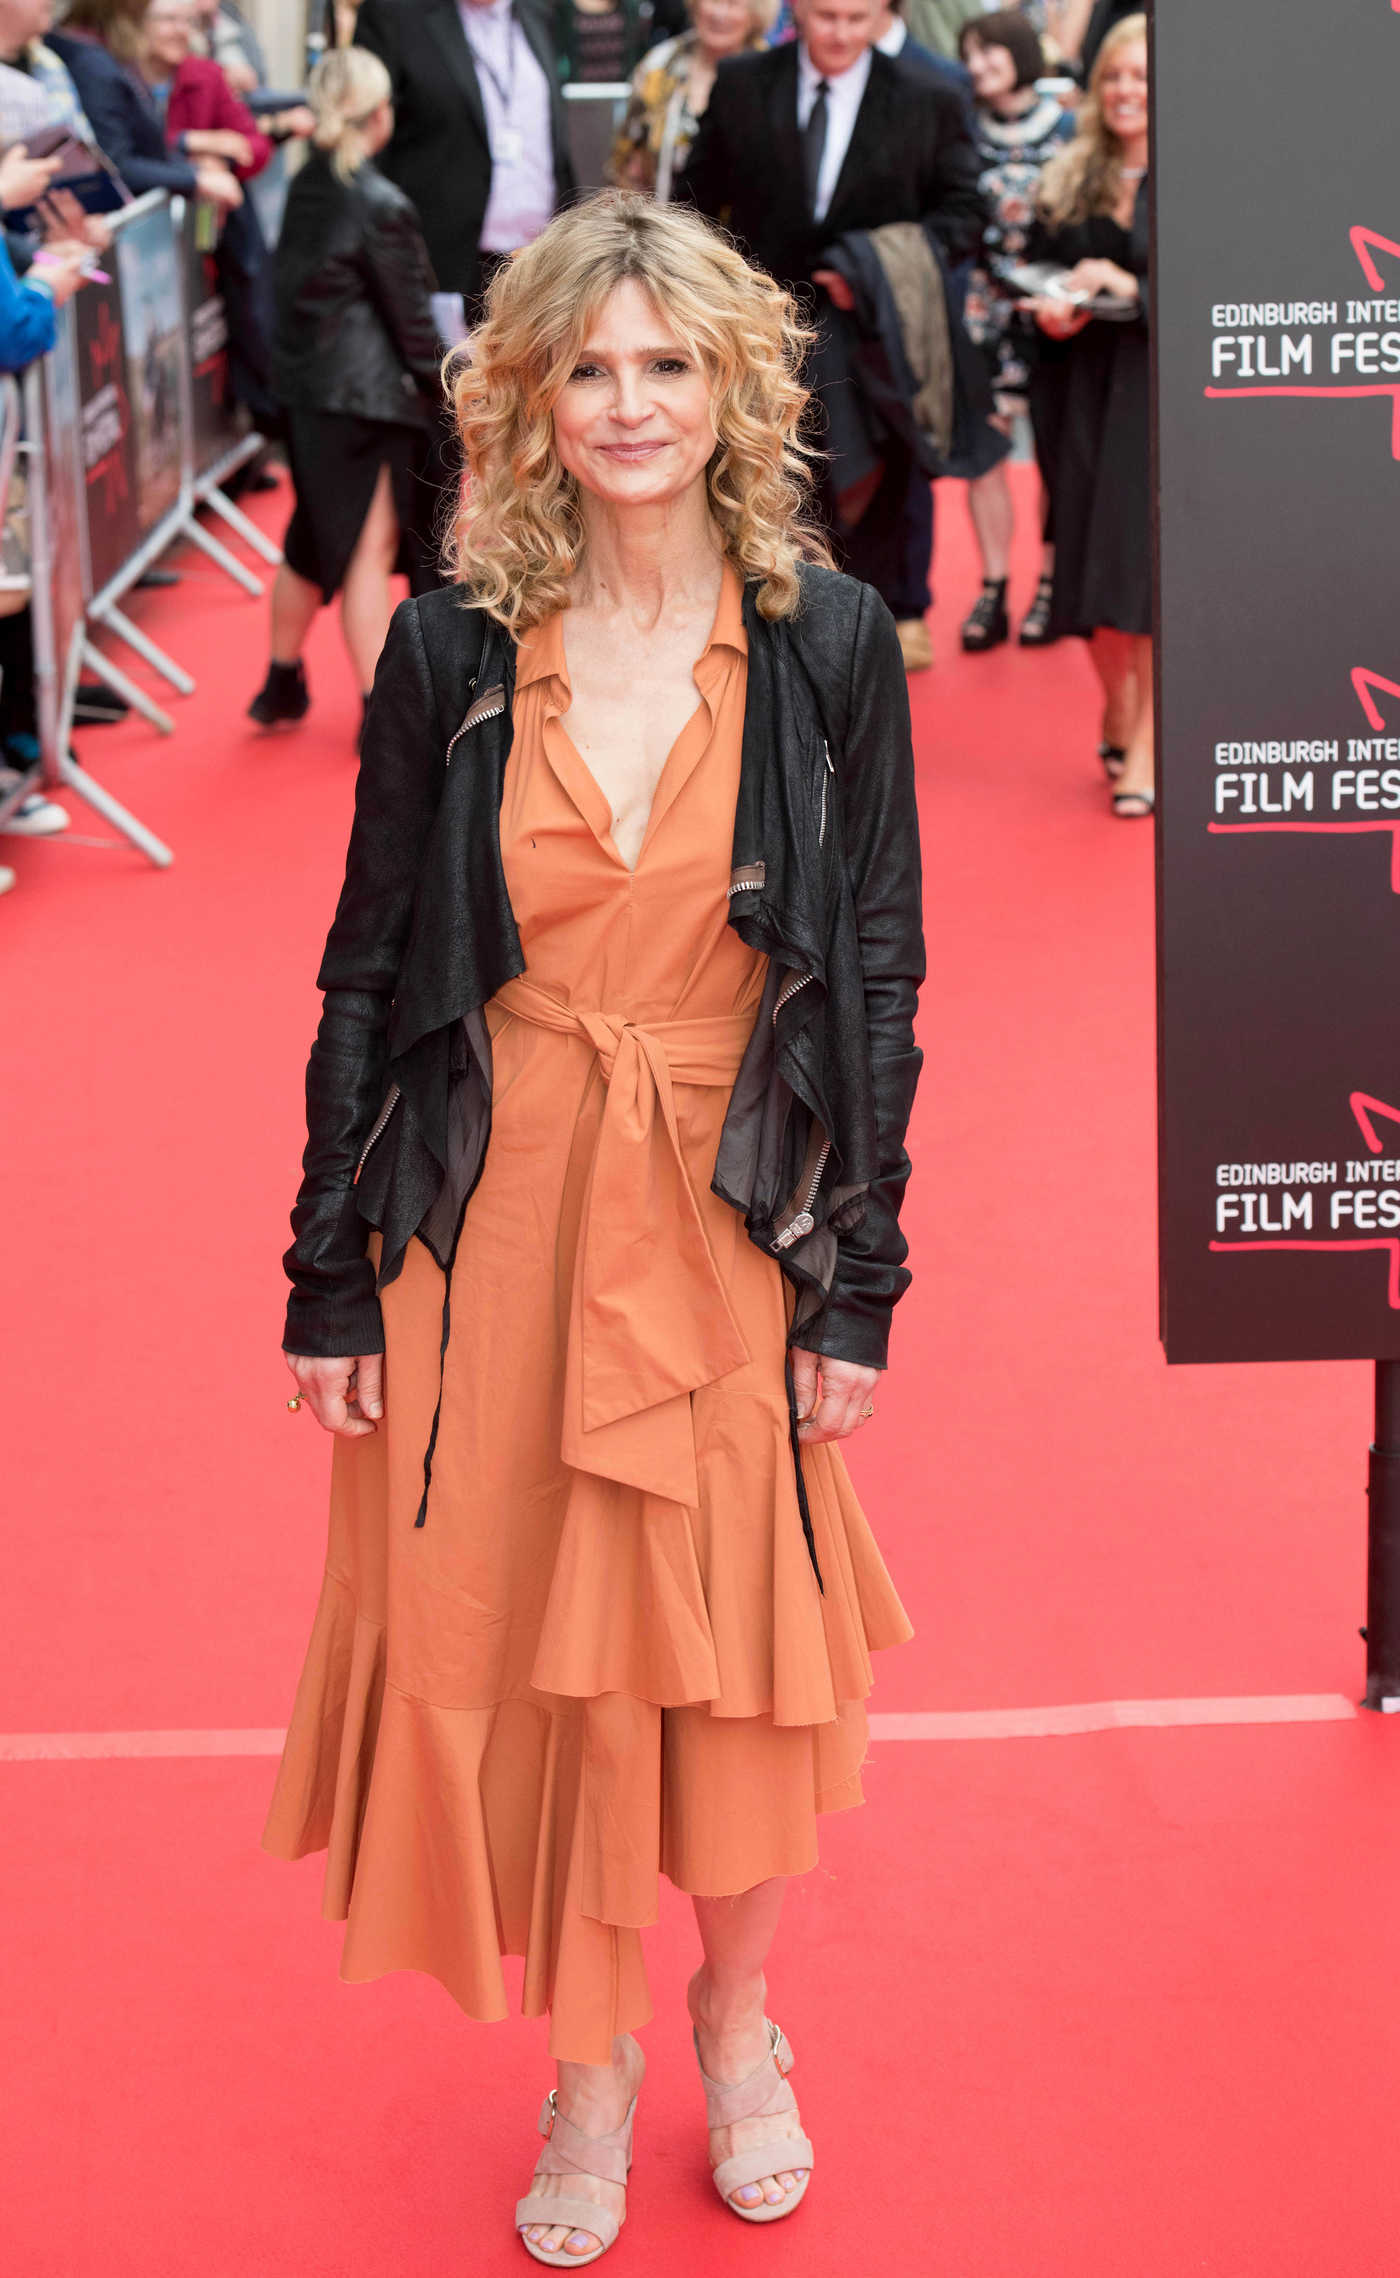 Kyra Sedgwick at the God's Own Country Premiere During the Edinburgh International Film Festival in Scotland 06/21/2017